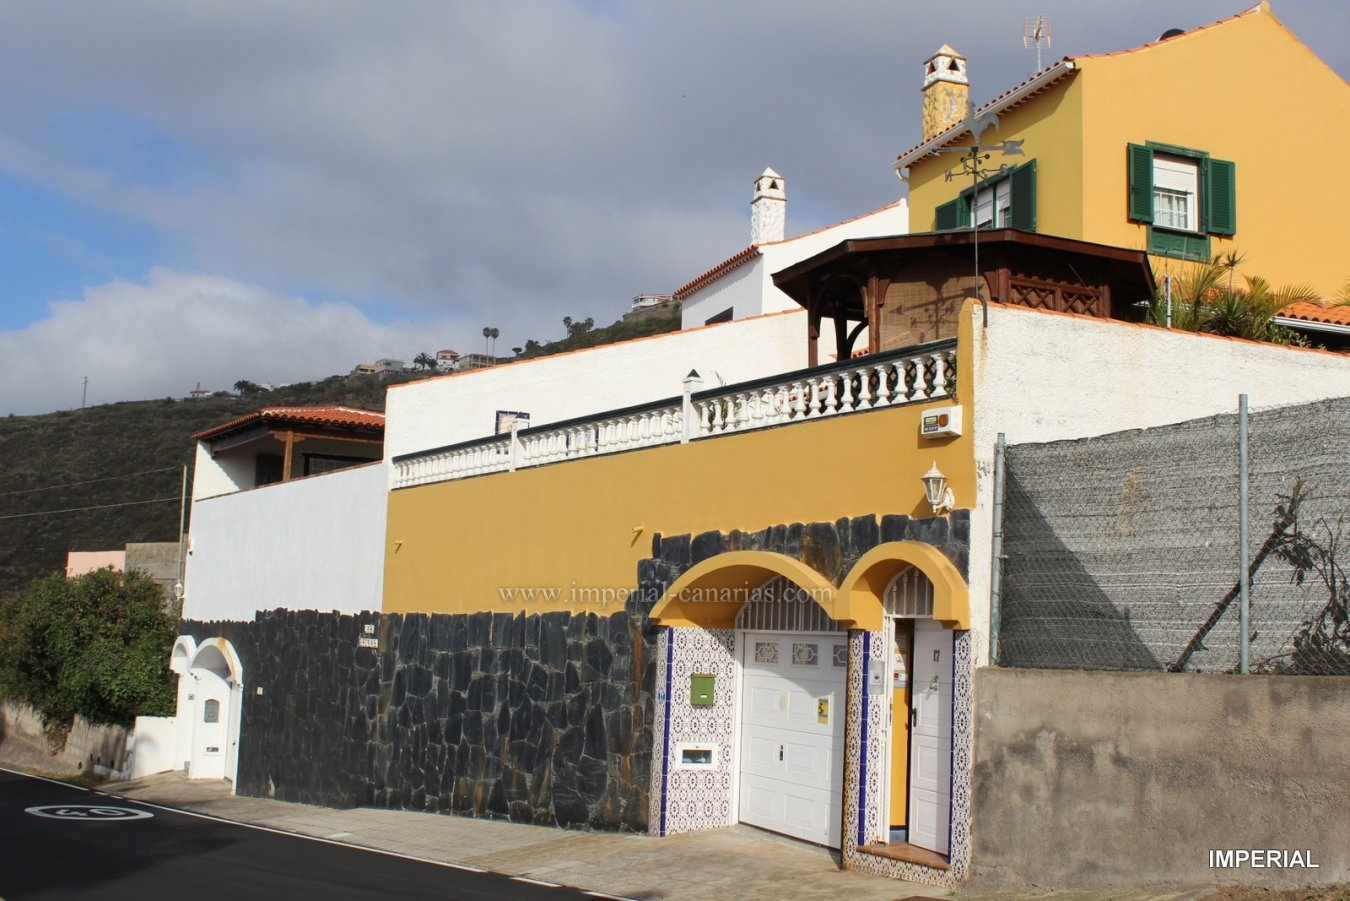 Beautiful semi-detached house in the area of El Sauzal with pool, sauna, barbecue and orchard, ideal for a family.